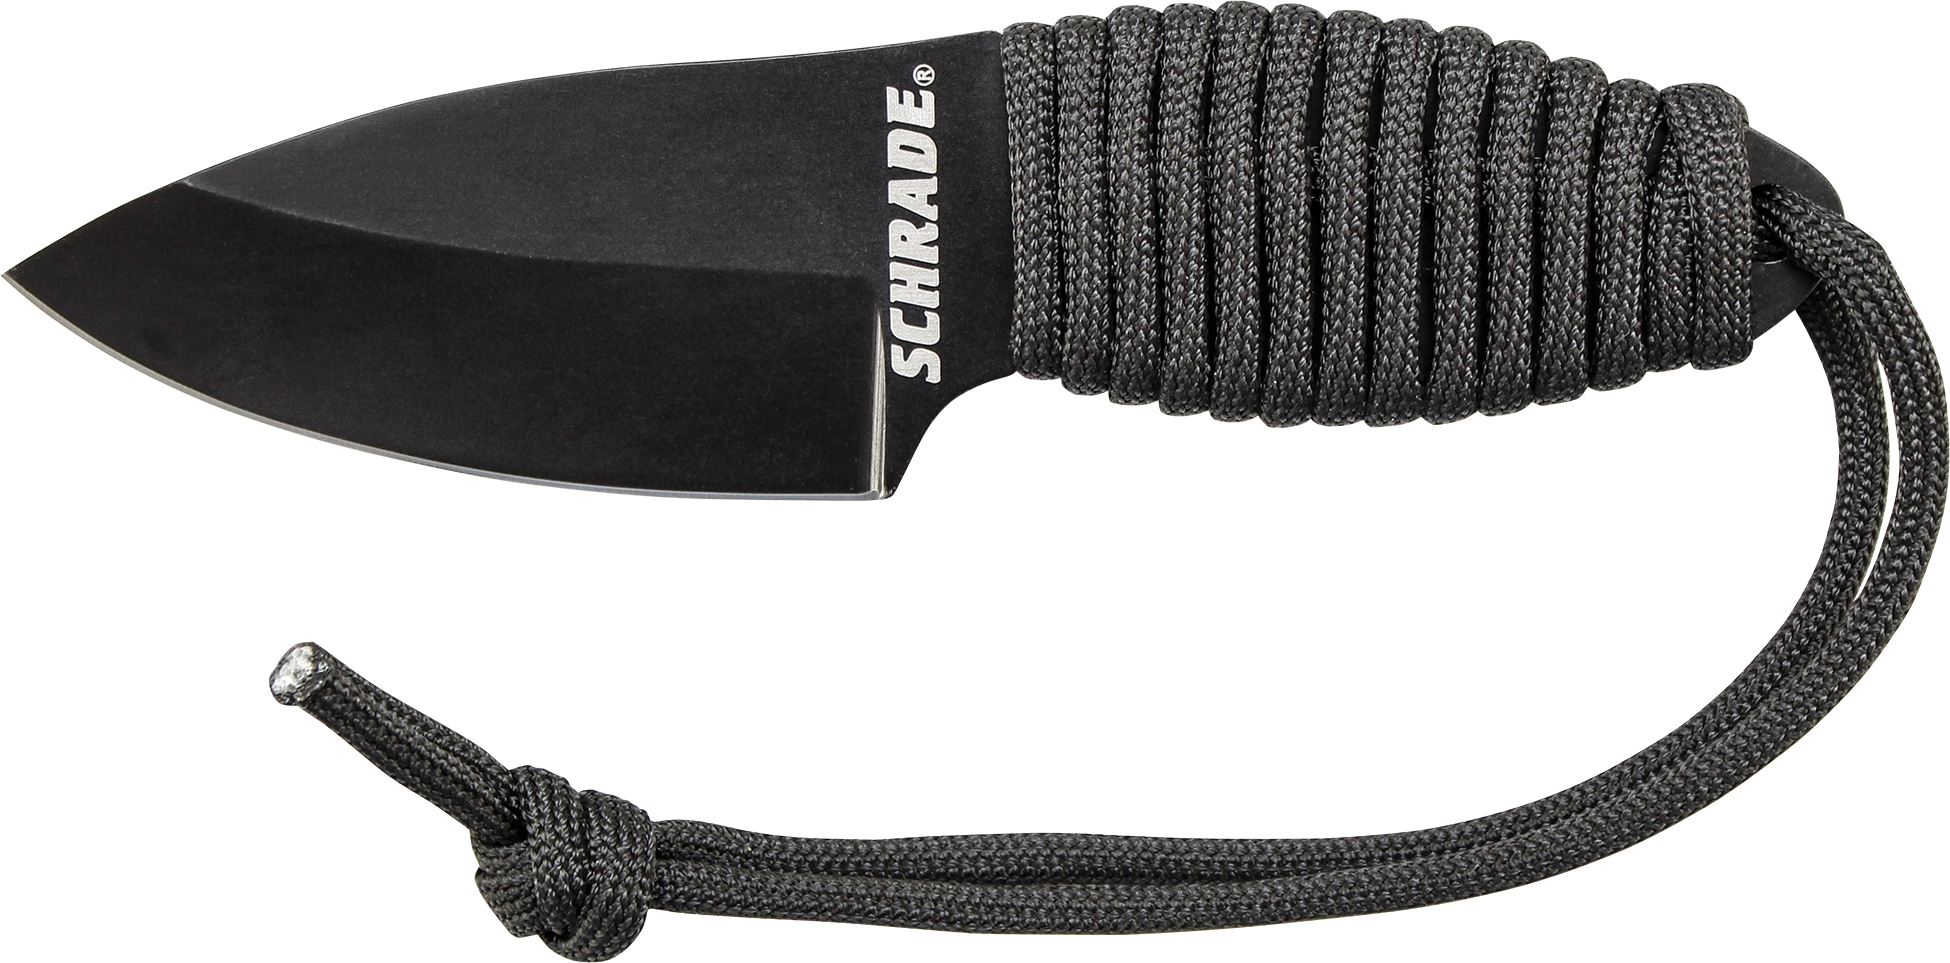 SCH406N - Schrade Small Neck Knife 8Cr13MoV Steel, Paracord Wrapped Handle